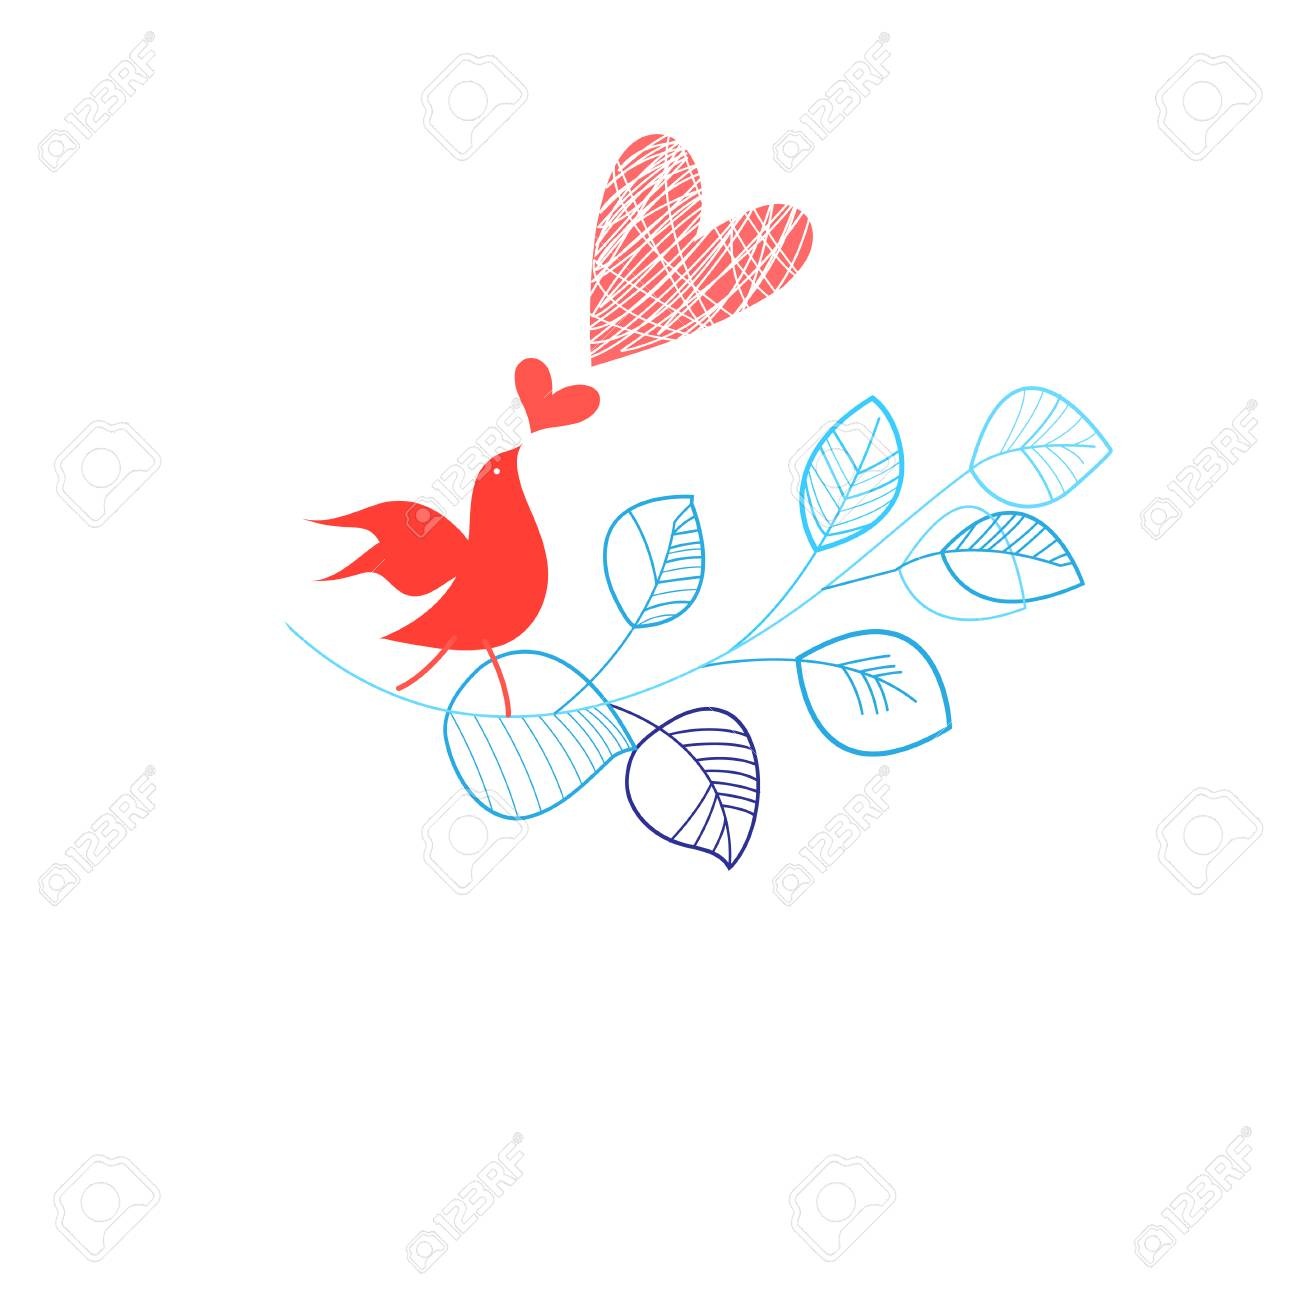 Holiday Card With A Bird In Love On White Background Royalty Free Heart Diagram Stock Vector 102015299